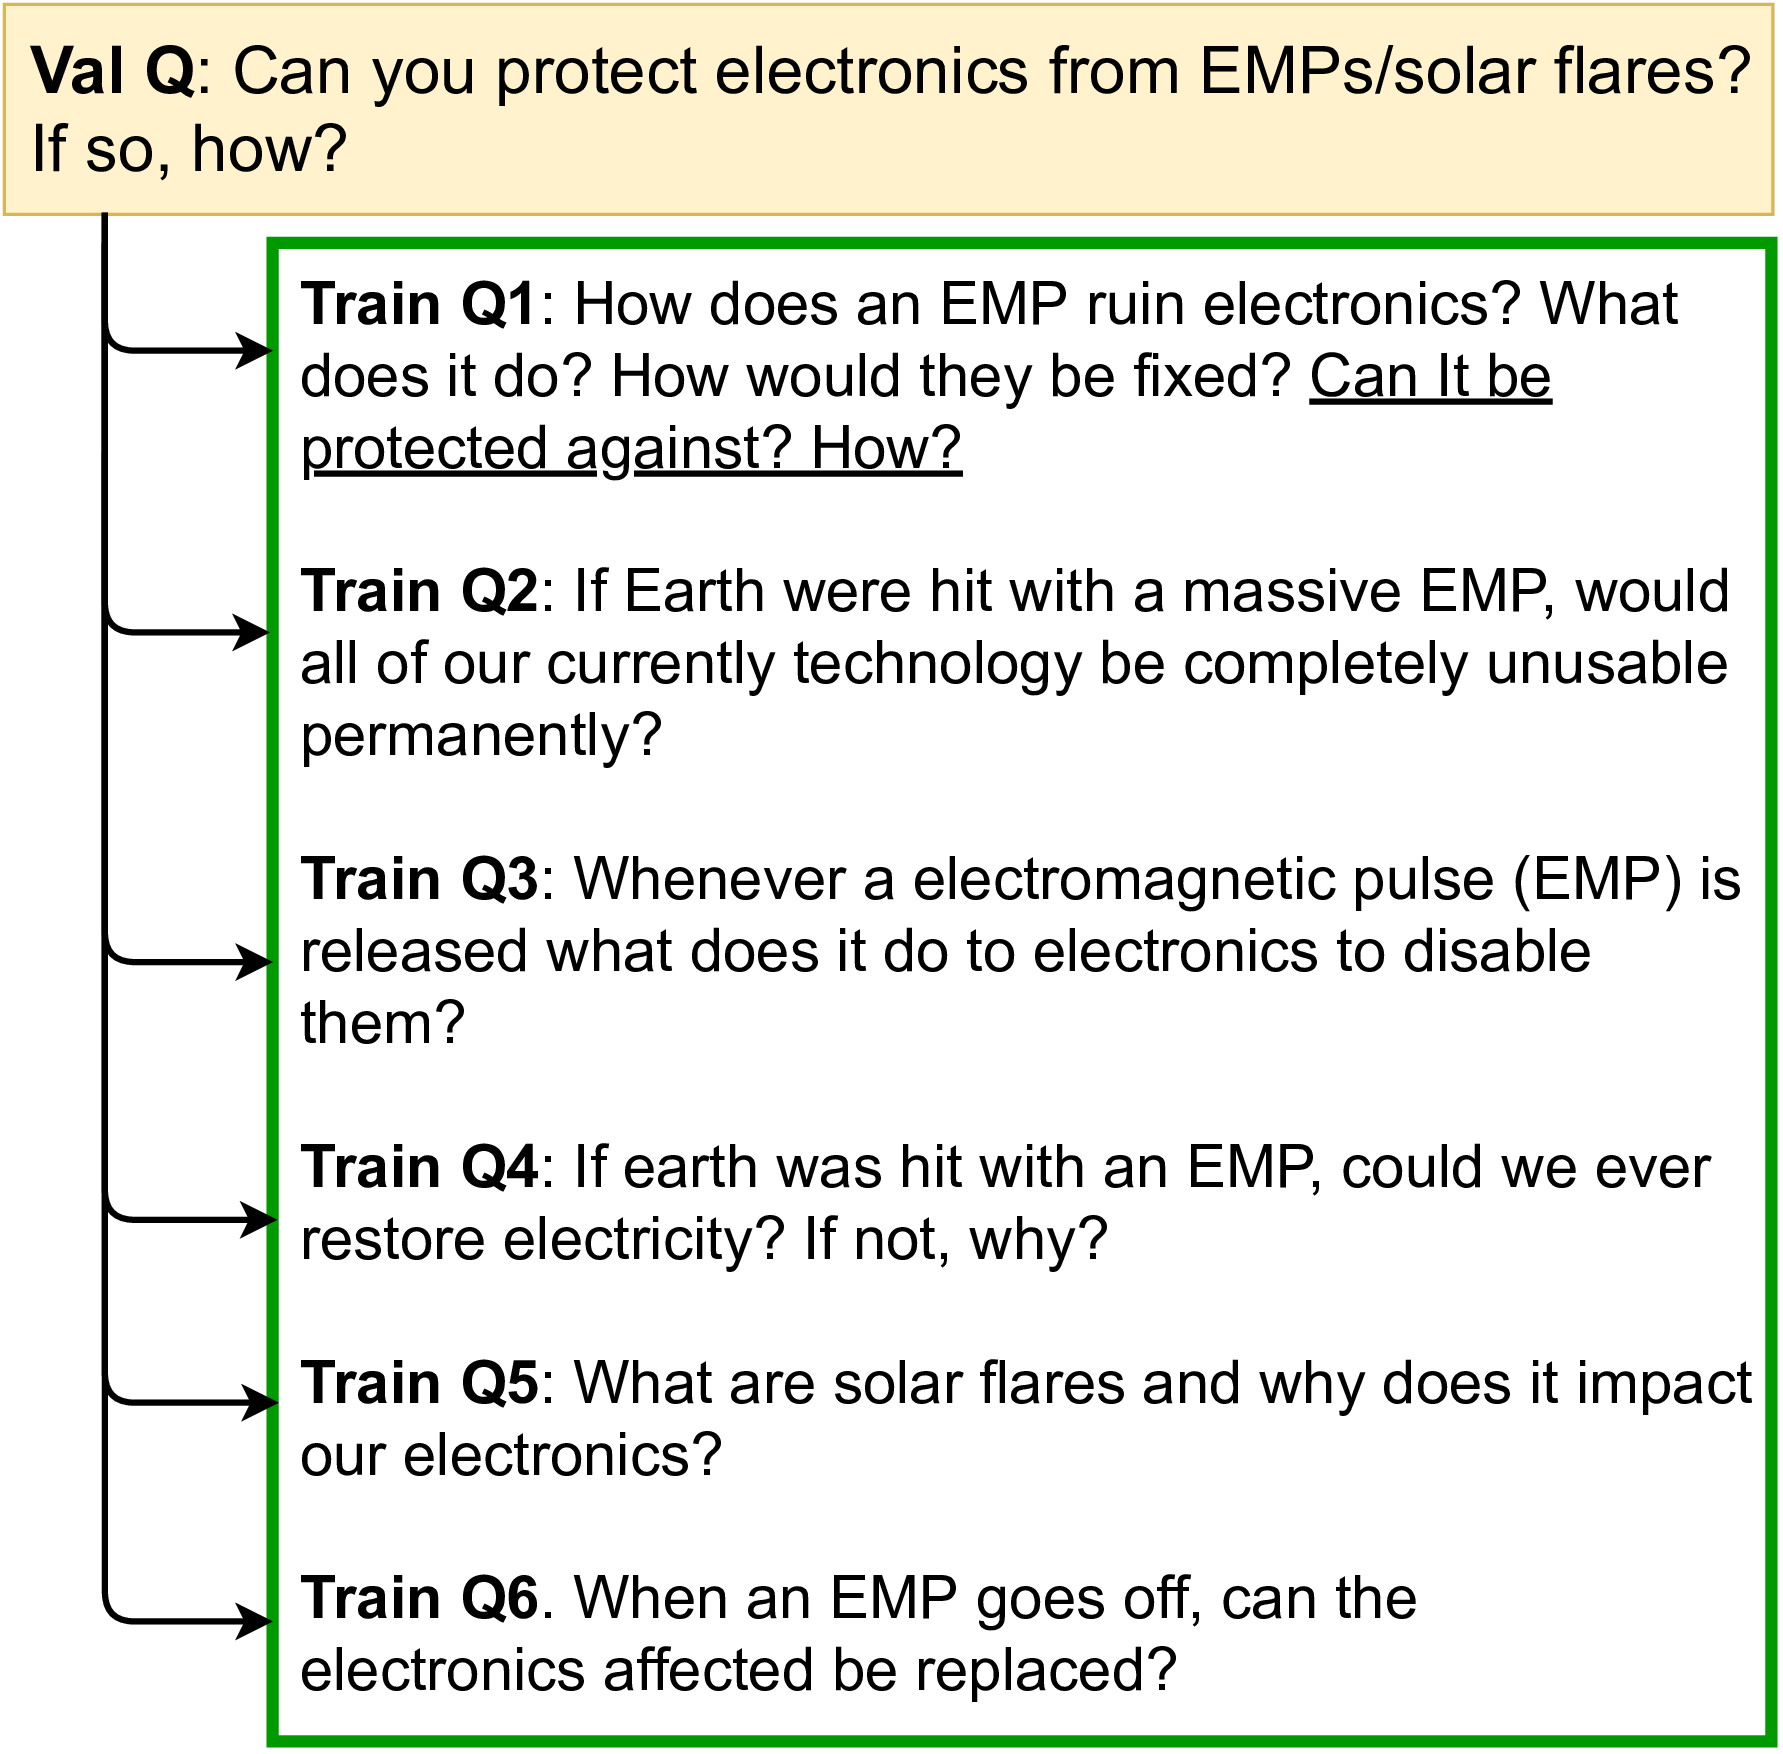 Some questions in validation are awfully similar to training questions